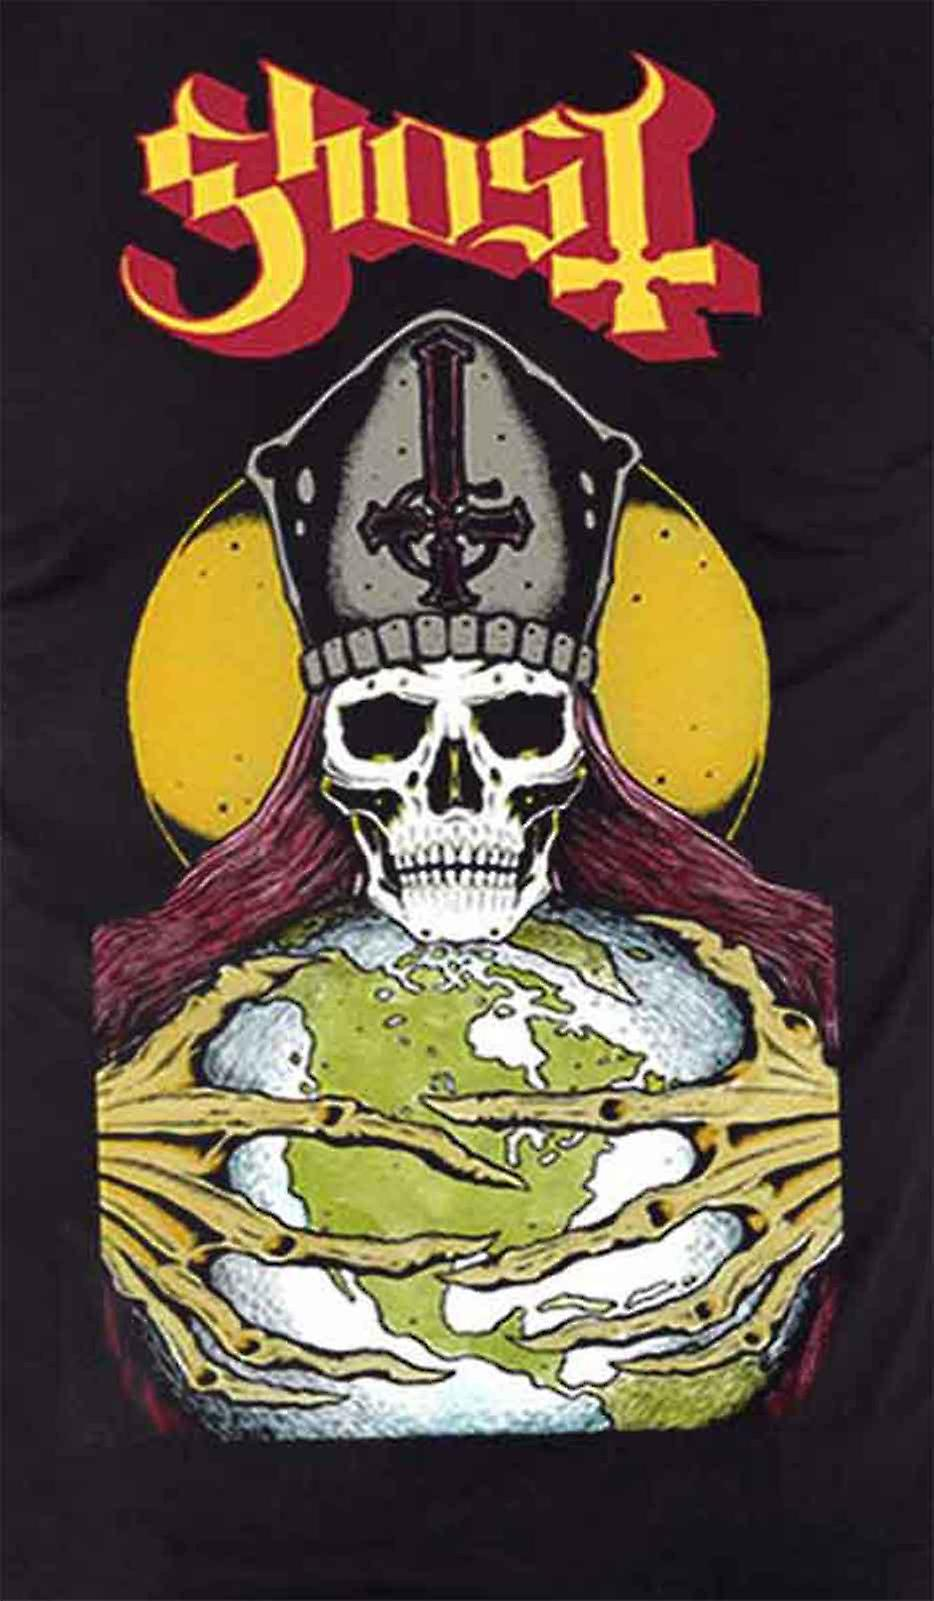 Ghost T Shirt Blood Ceremony band logo new Official Mens Black